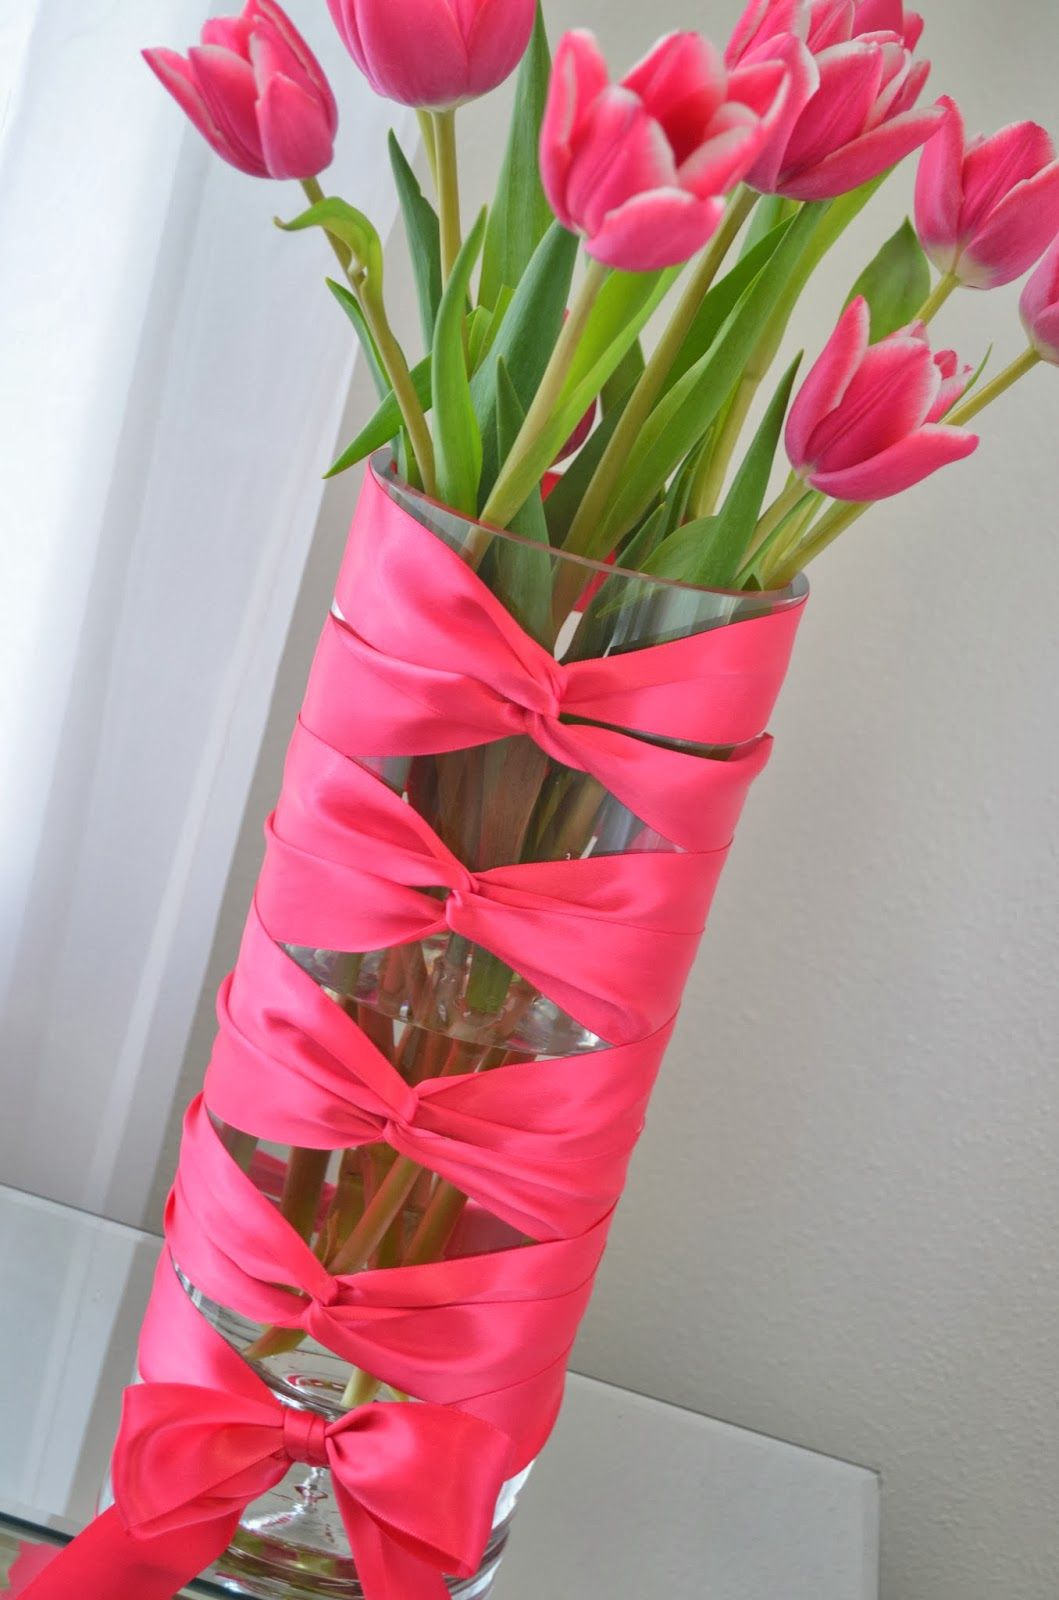 Diy Flower Vase Idea Corset Vase With Tulips Modern Bohemian Lifestyle Flower Vase Diy Flower Vases Decoration Diy Vase